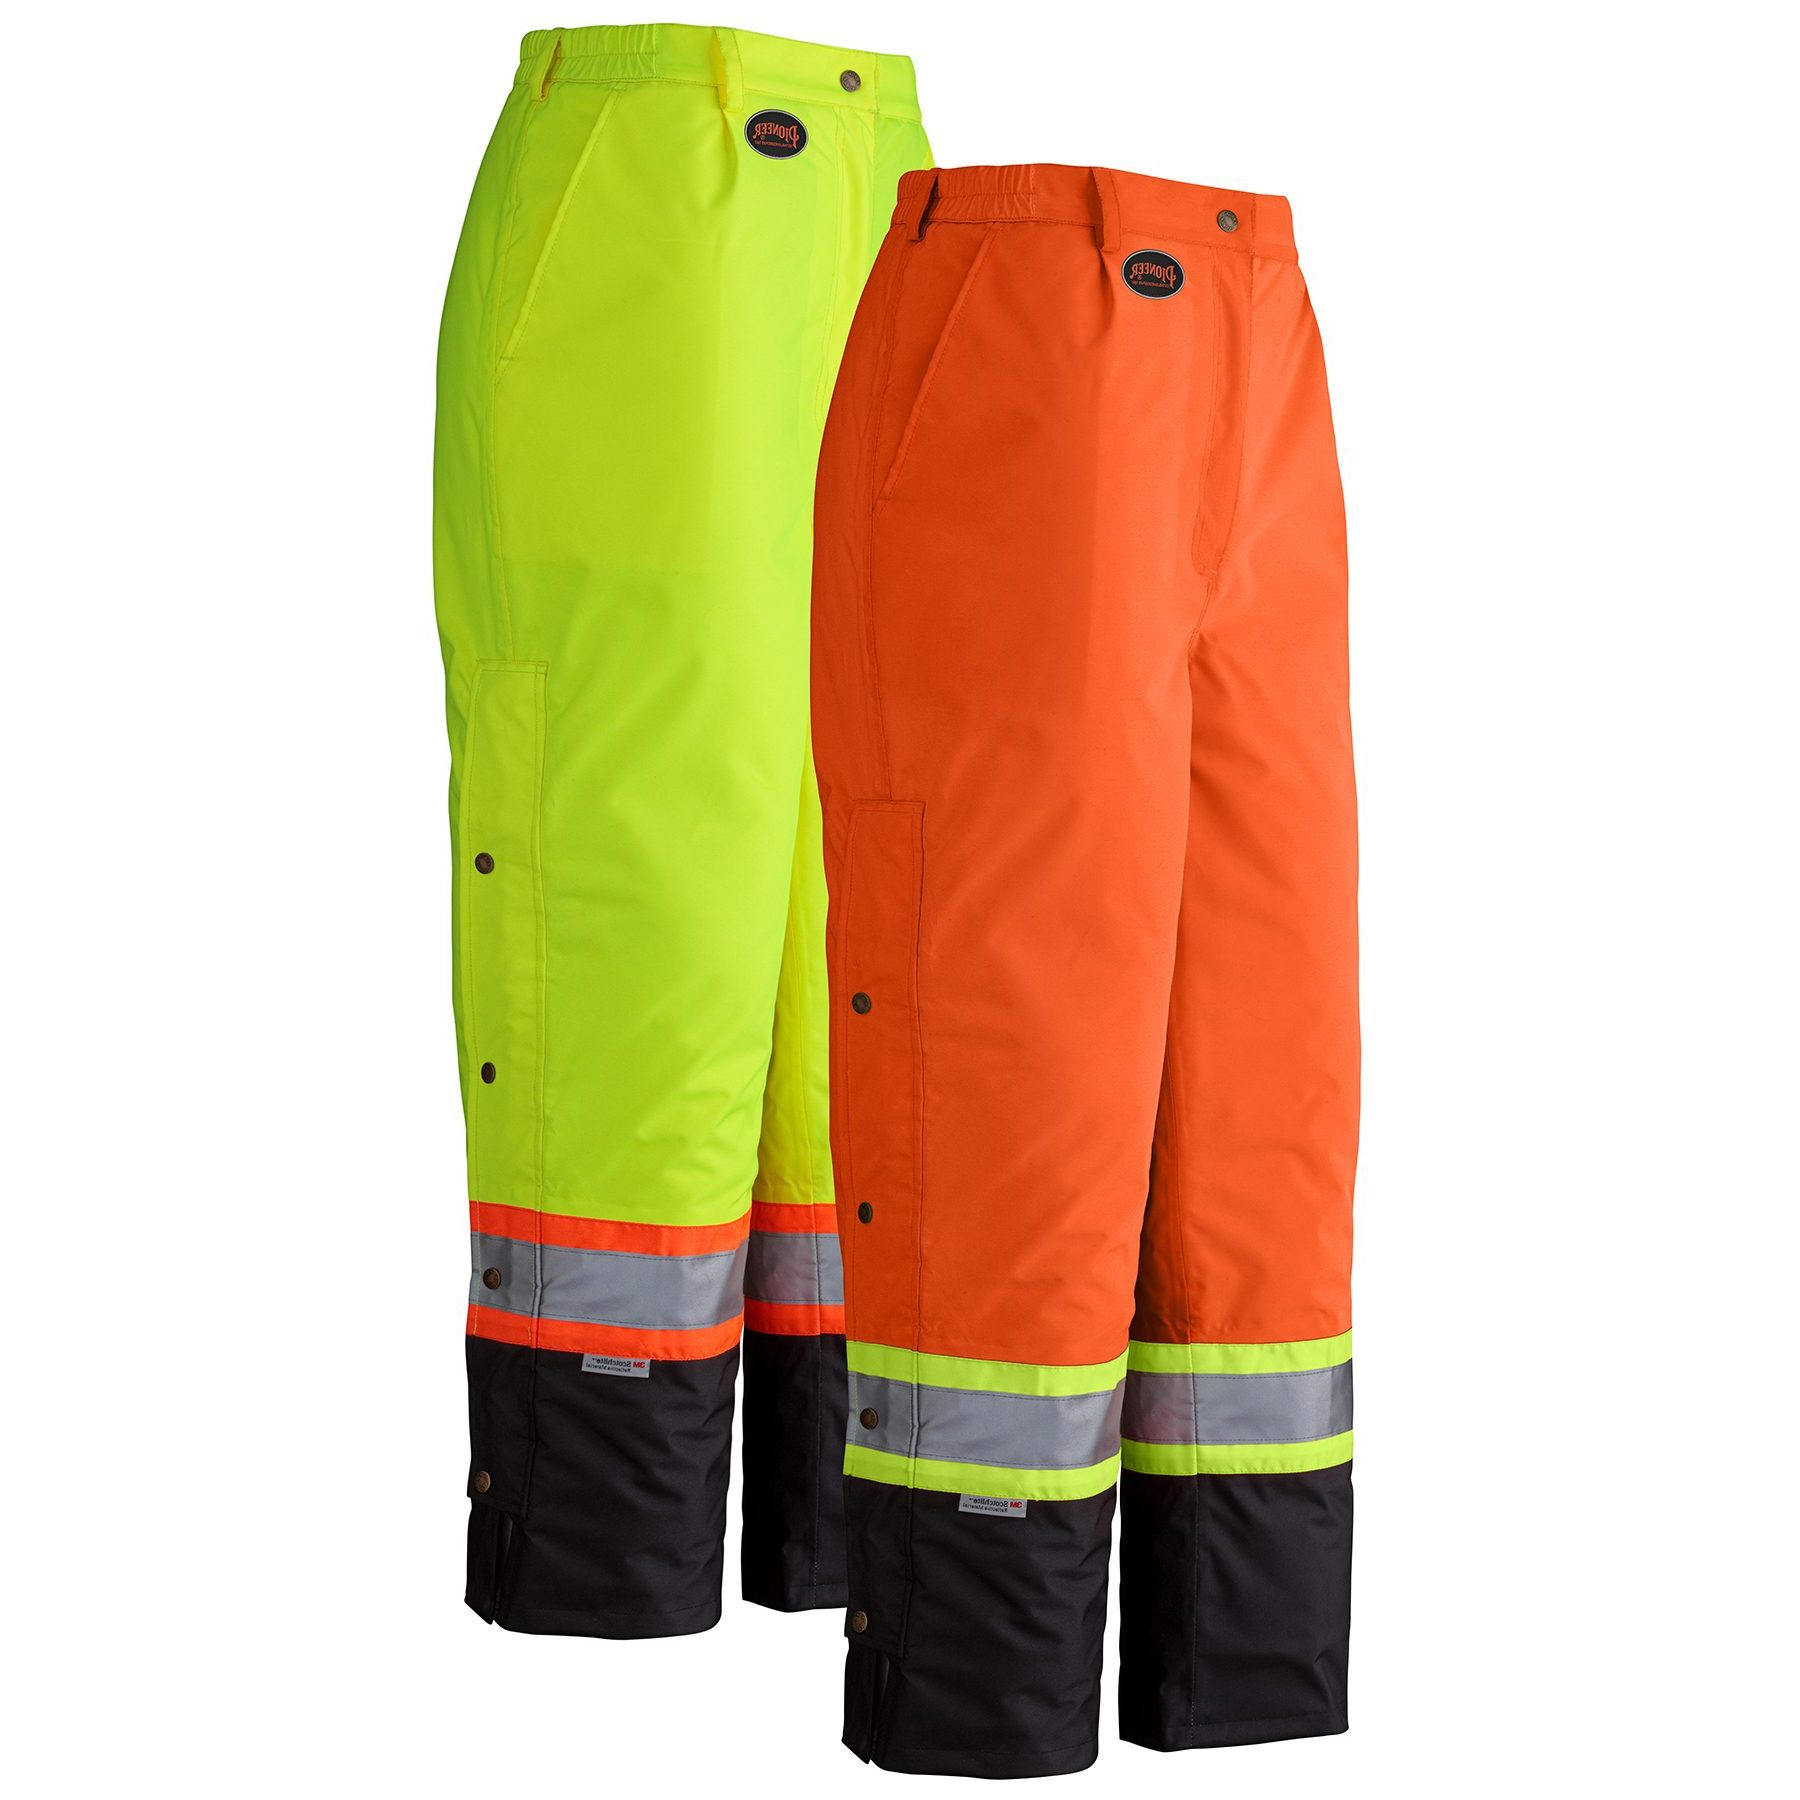 Waterproof insulated hi visibility workwear pants